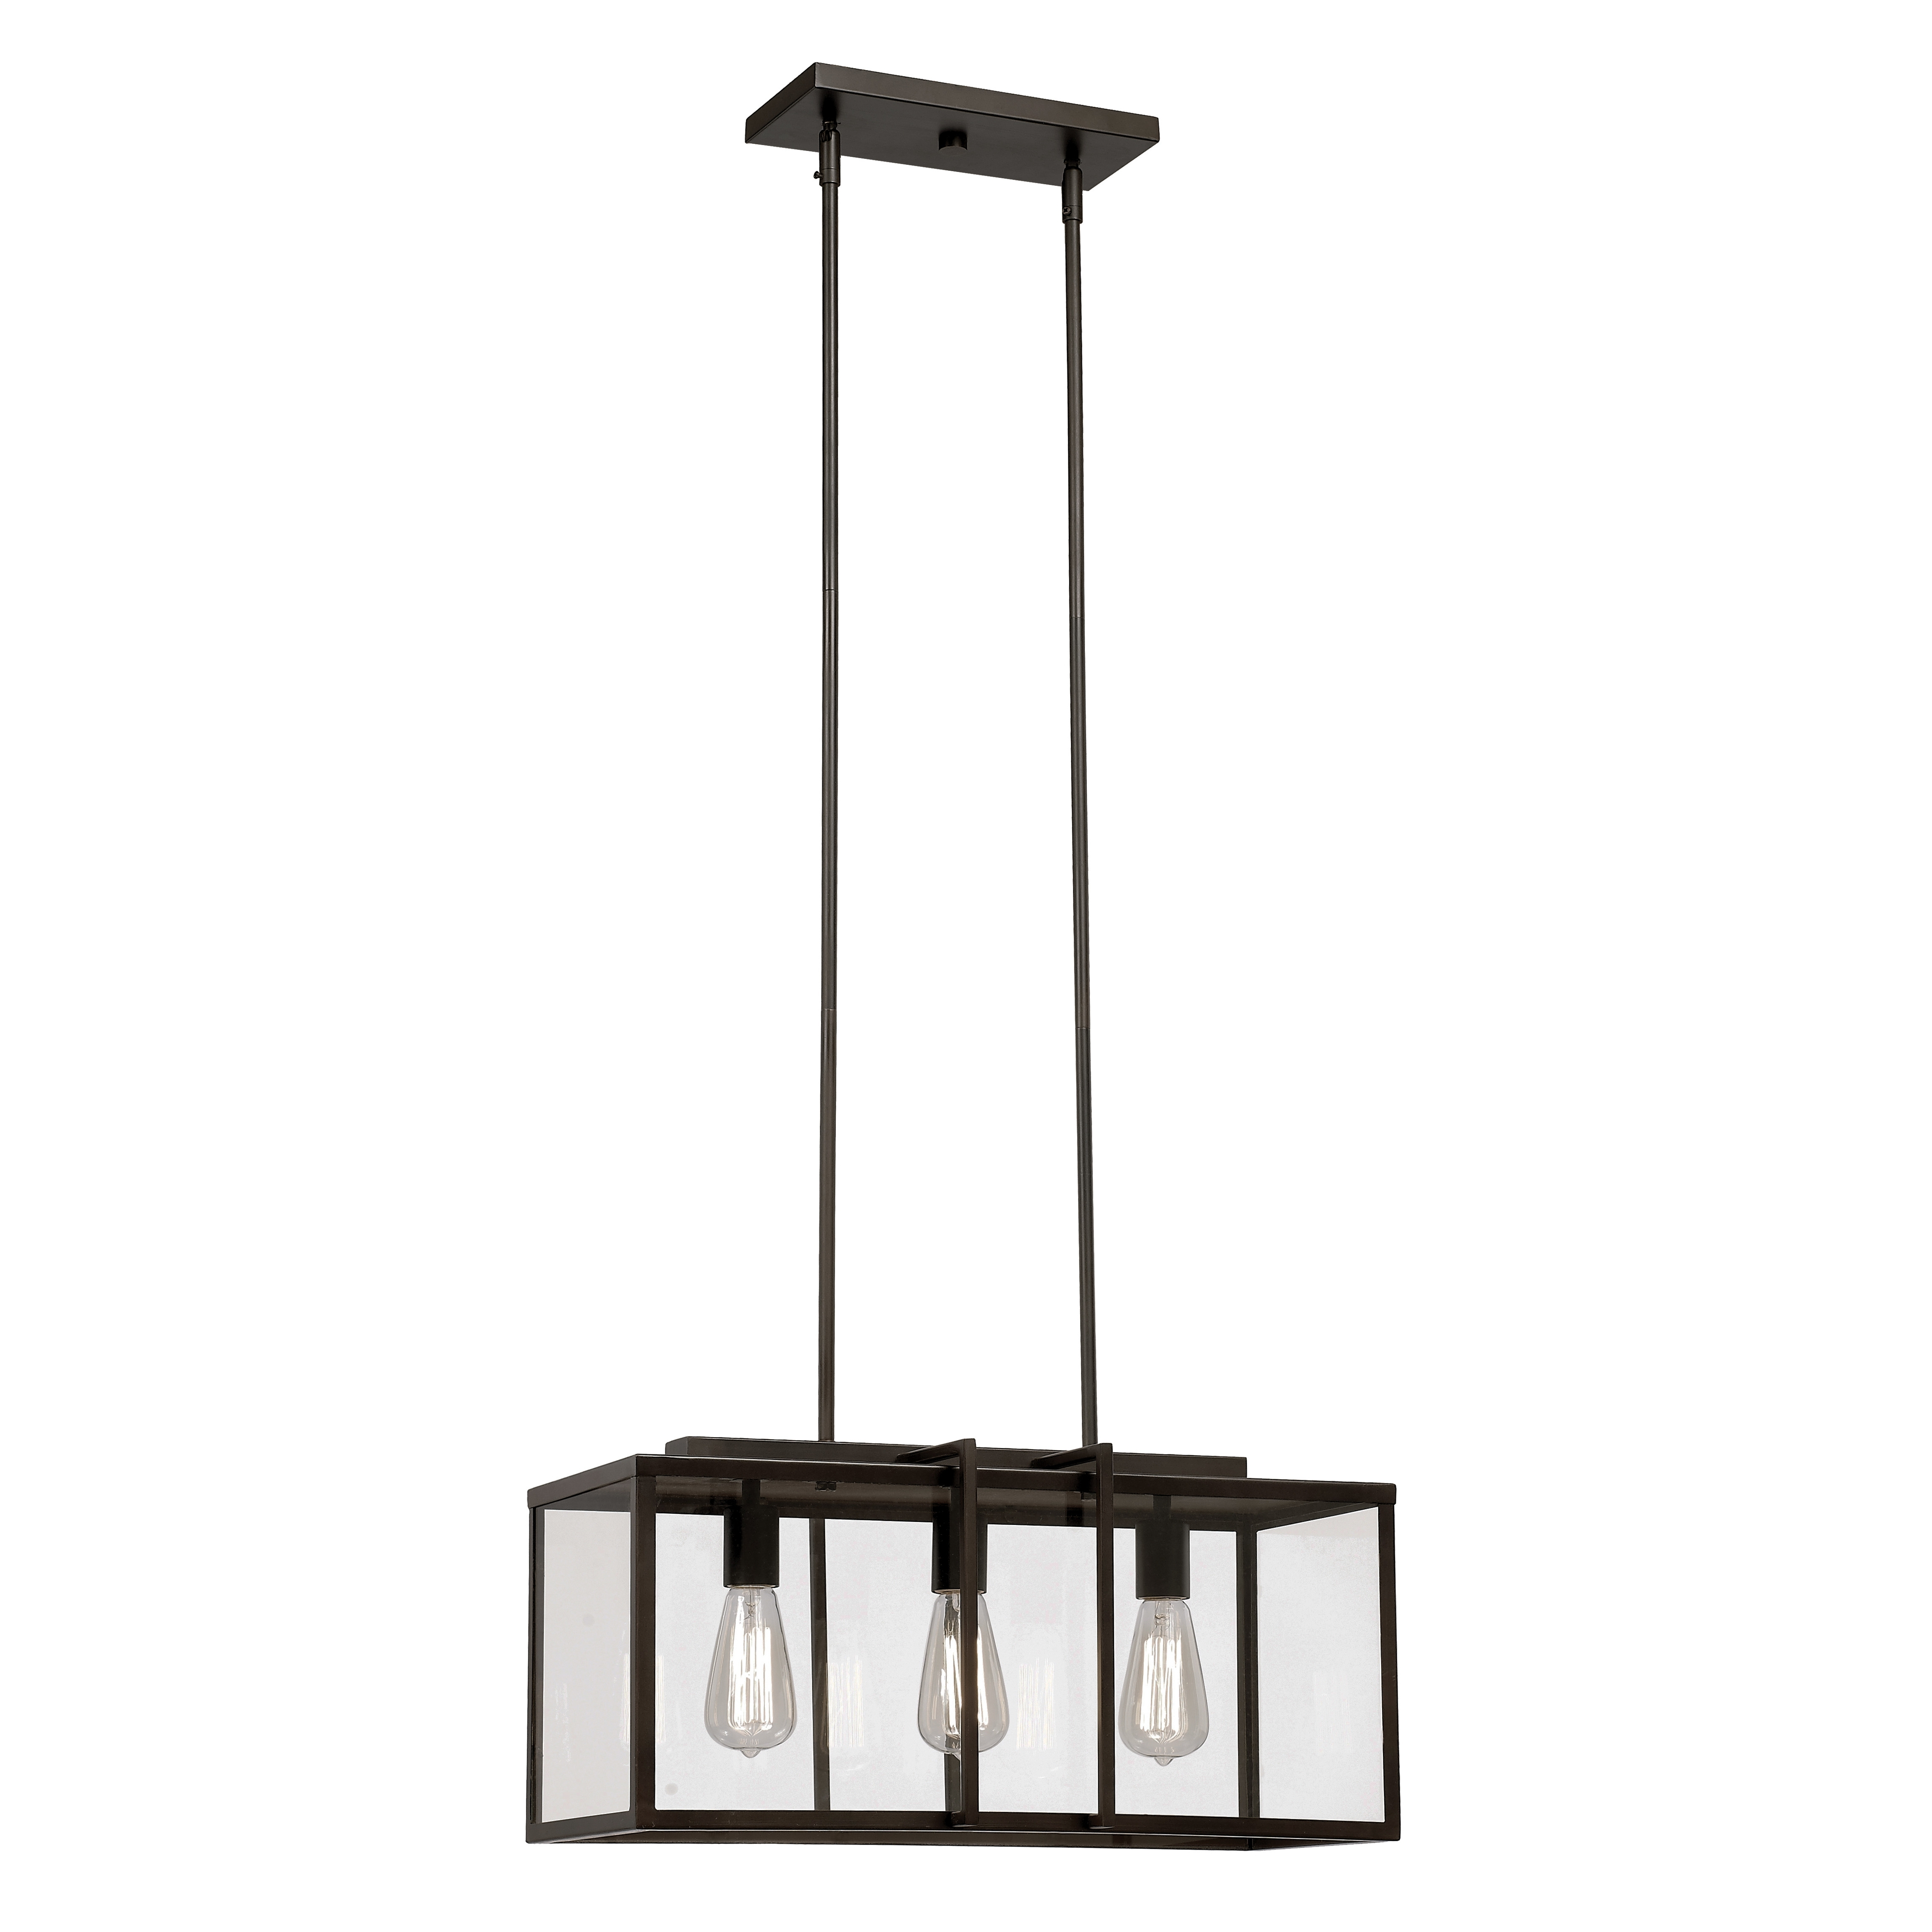 Island Lights Wayfair Bolsano 3 Light Kitchen Pendant ~ Loversiq Intended For Popular Wayfair Outdoor Hanging Lights (View 19 of 20)